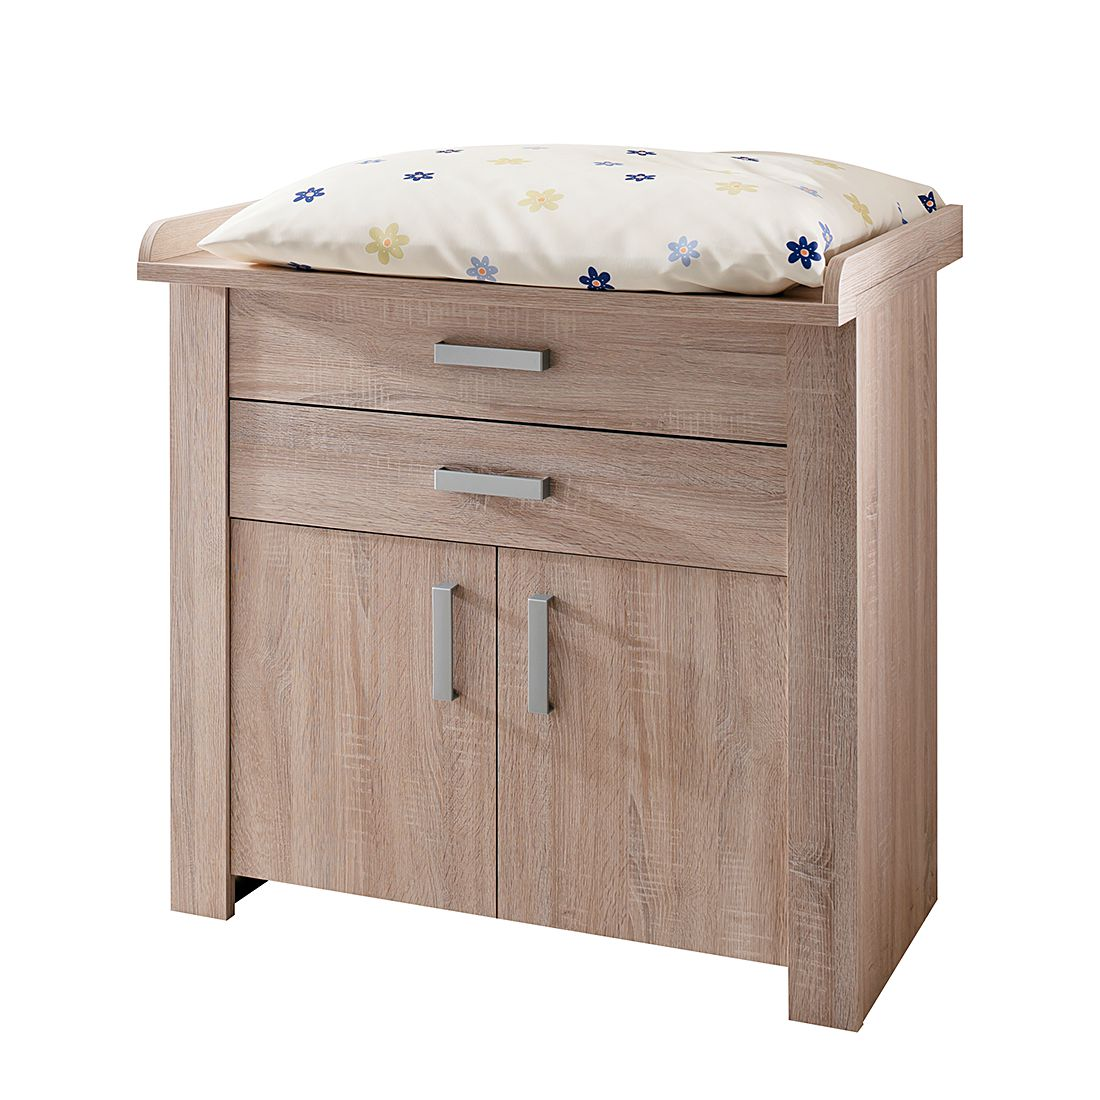 Commode Henri   grof gezaagd eikenhoutkleurig_ Kids Club Collection